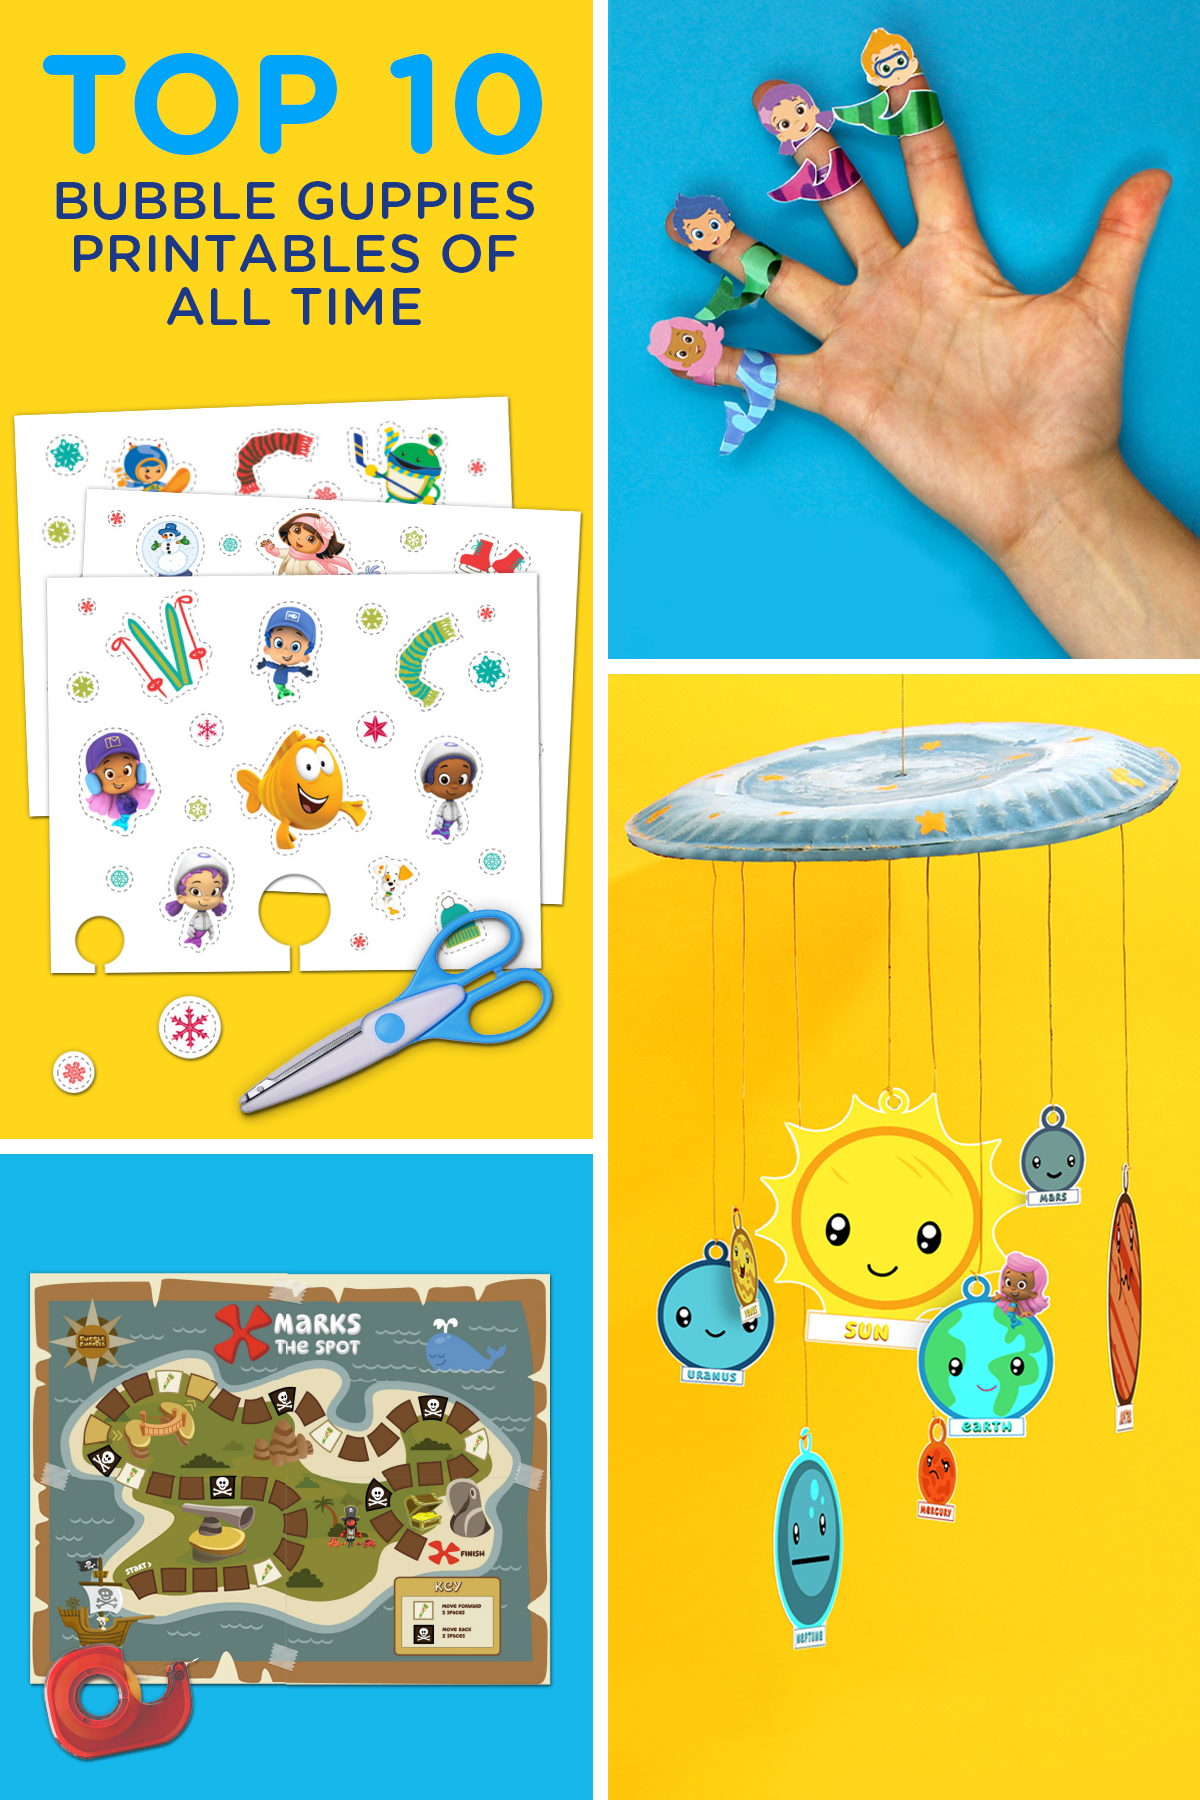 photo regarding Bubble Guppies Printable called Greatest 10 Bubble Guppies Printables of All Period Nickelodeon